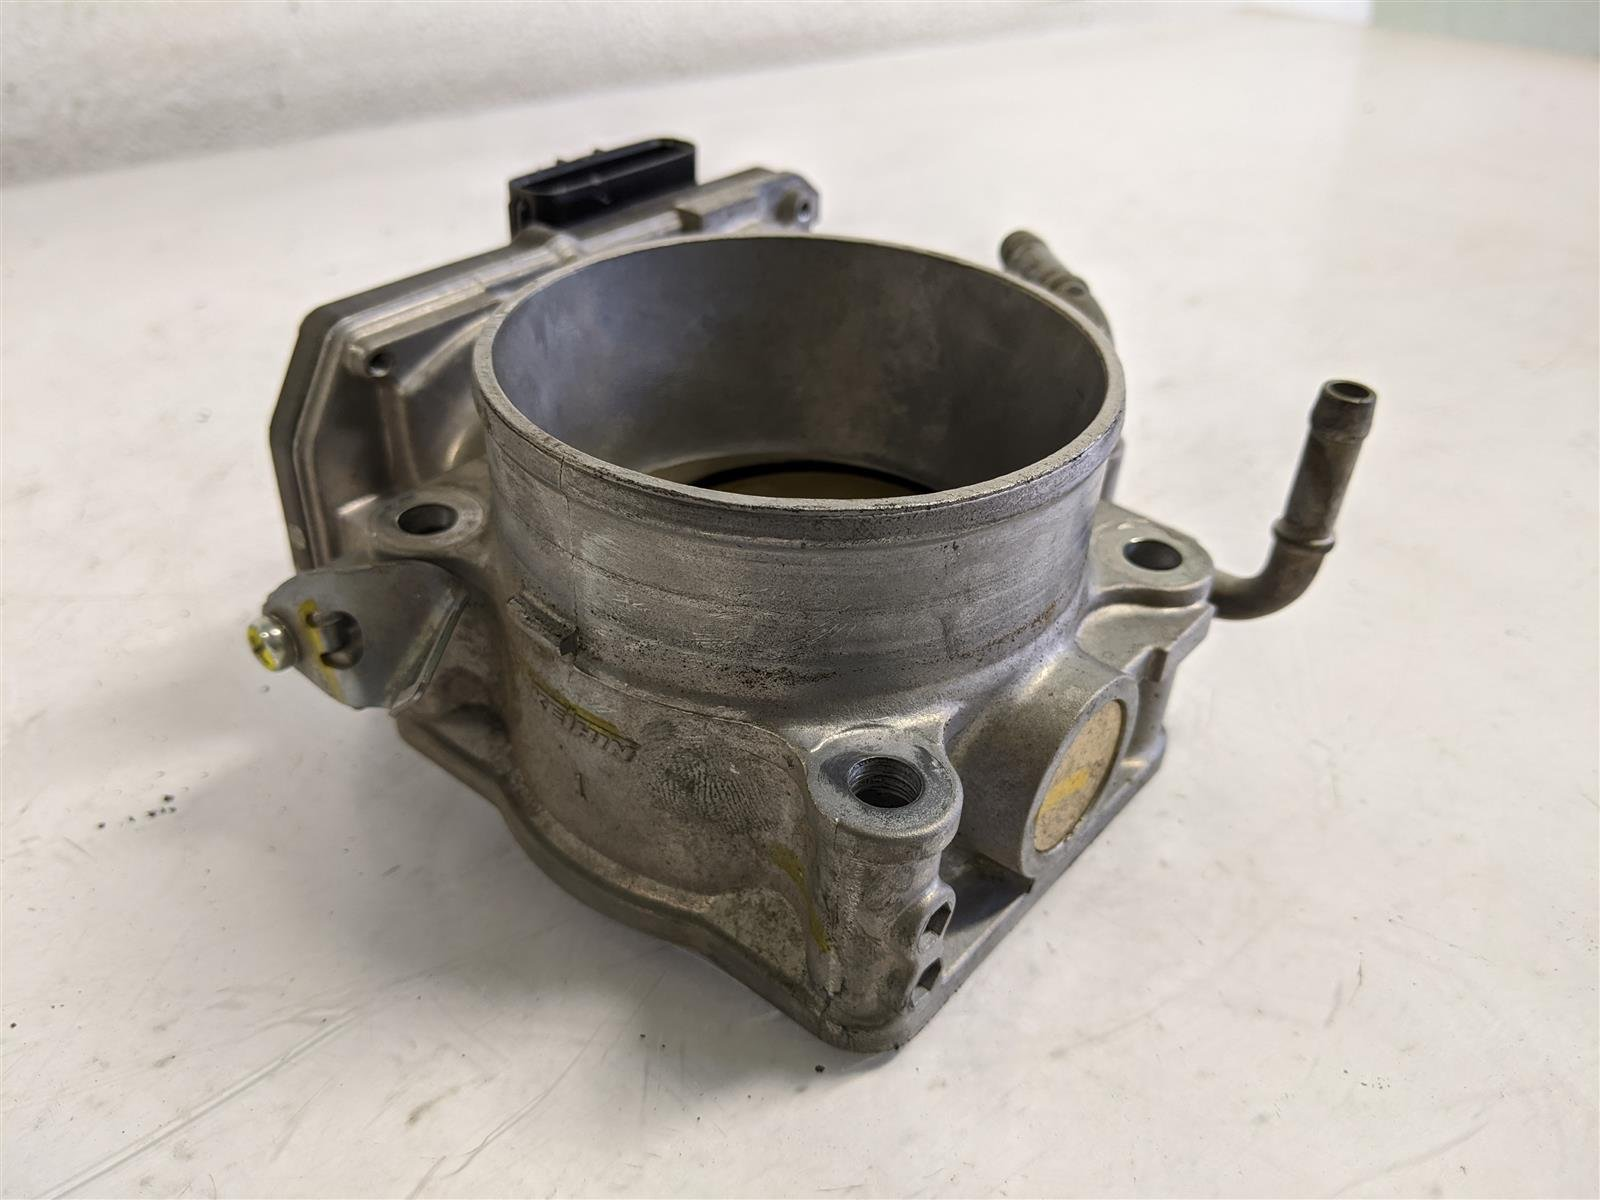 2016 Honda Pilot Throttle Body Replacement